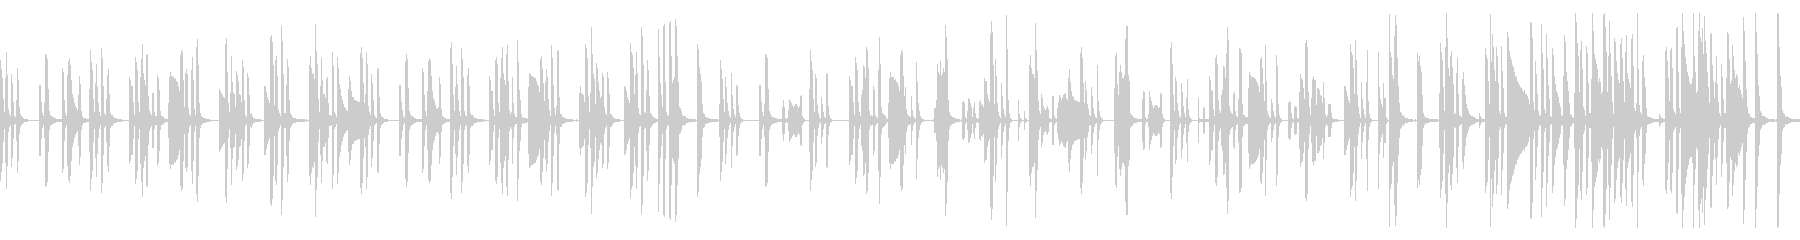 A slightly everyday system with a loose atmosphere's unreproduced waveform